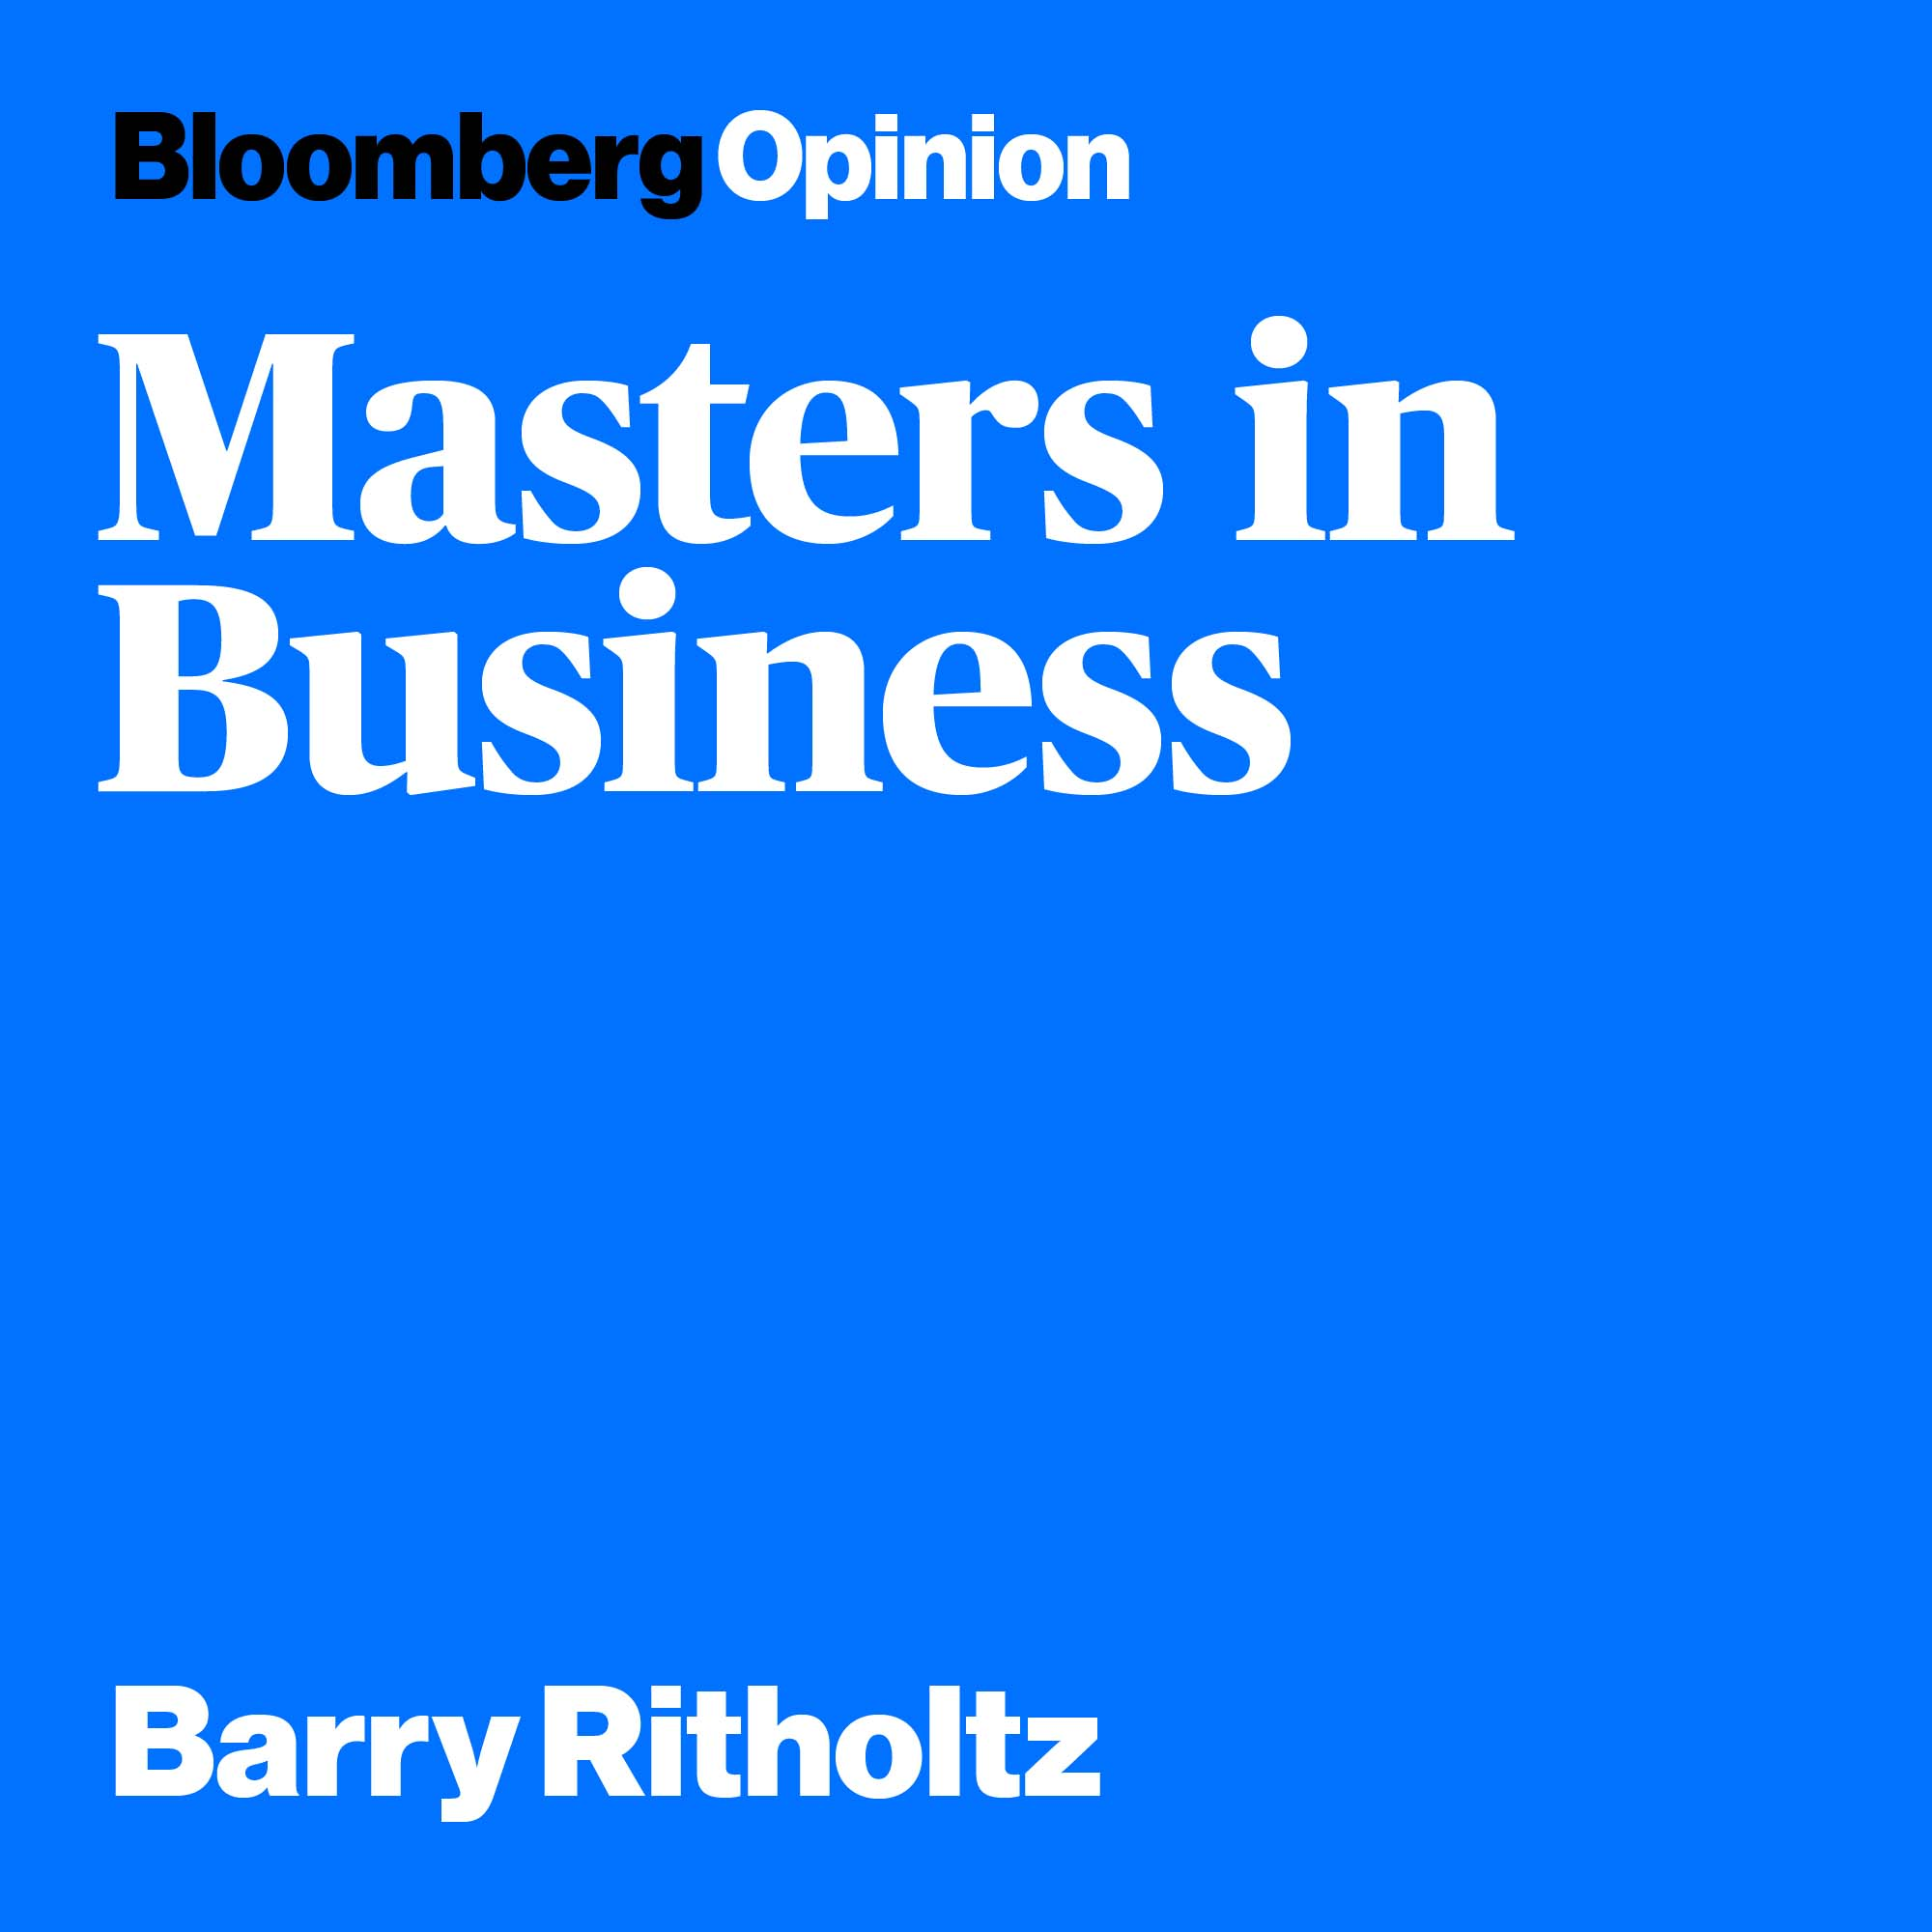 Bloomberg Opinion Masters in Business